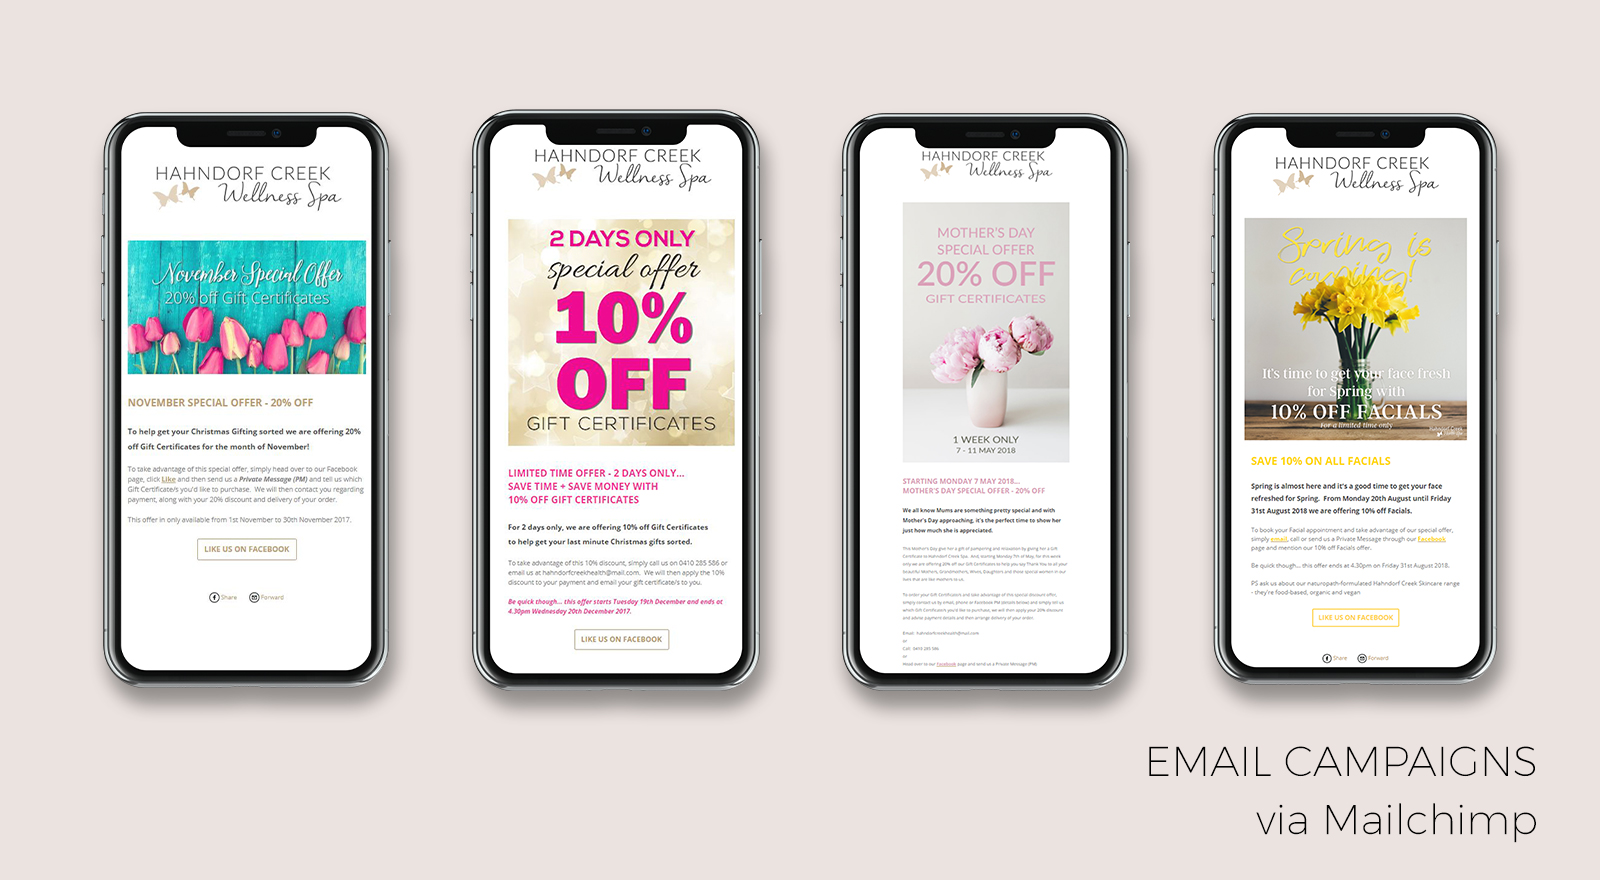 Email Campaign design for Hahndorf Creek Day Spa